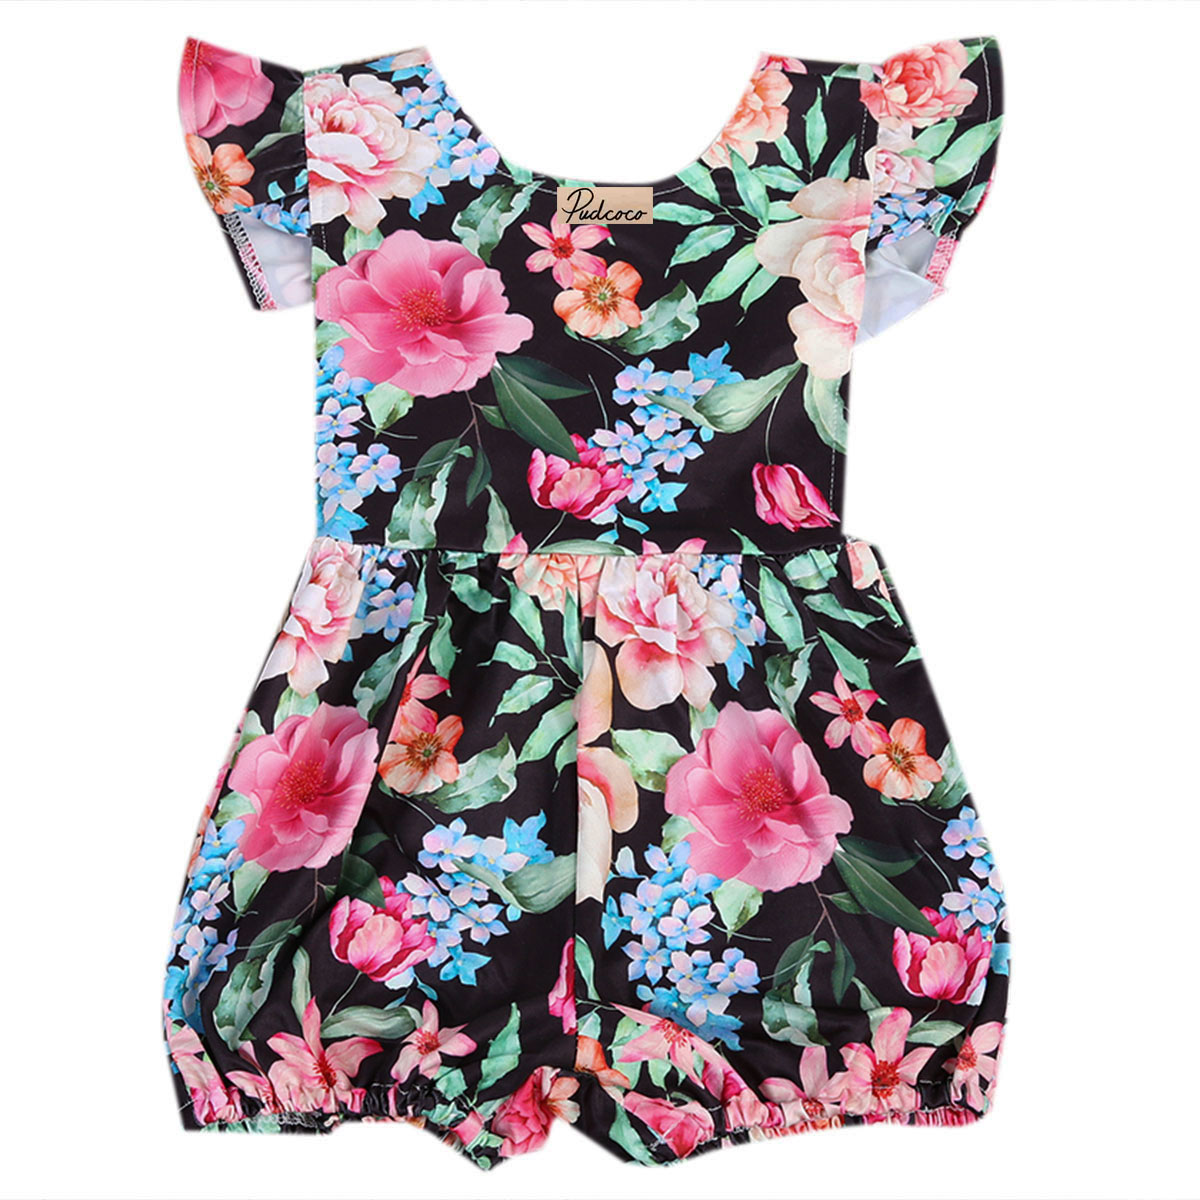 One-Pieces Cute Newborn Infant Baby Girls Sleeveless Black Floral Romper Outfits Summer Sunsuit Clothes pudcoco newborn infant baby girls clothes short sleeve floral romper headband summer cute cotton one piece clothes